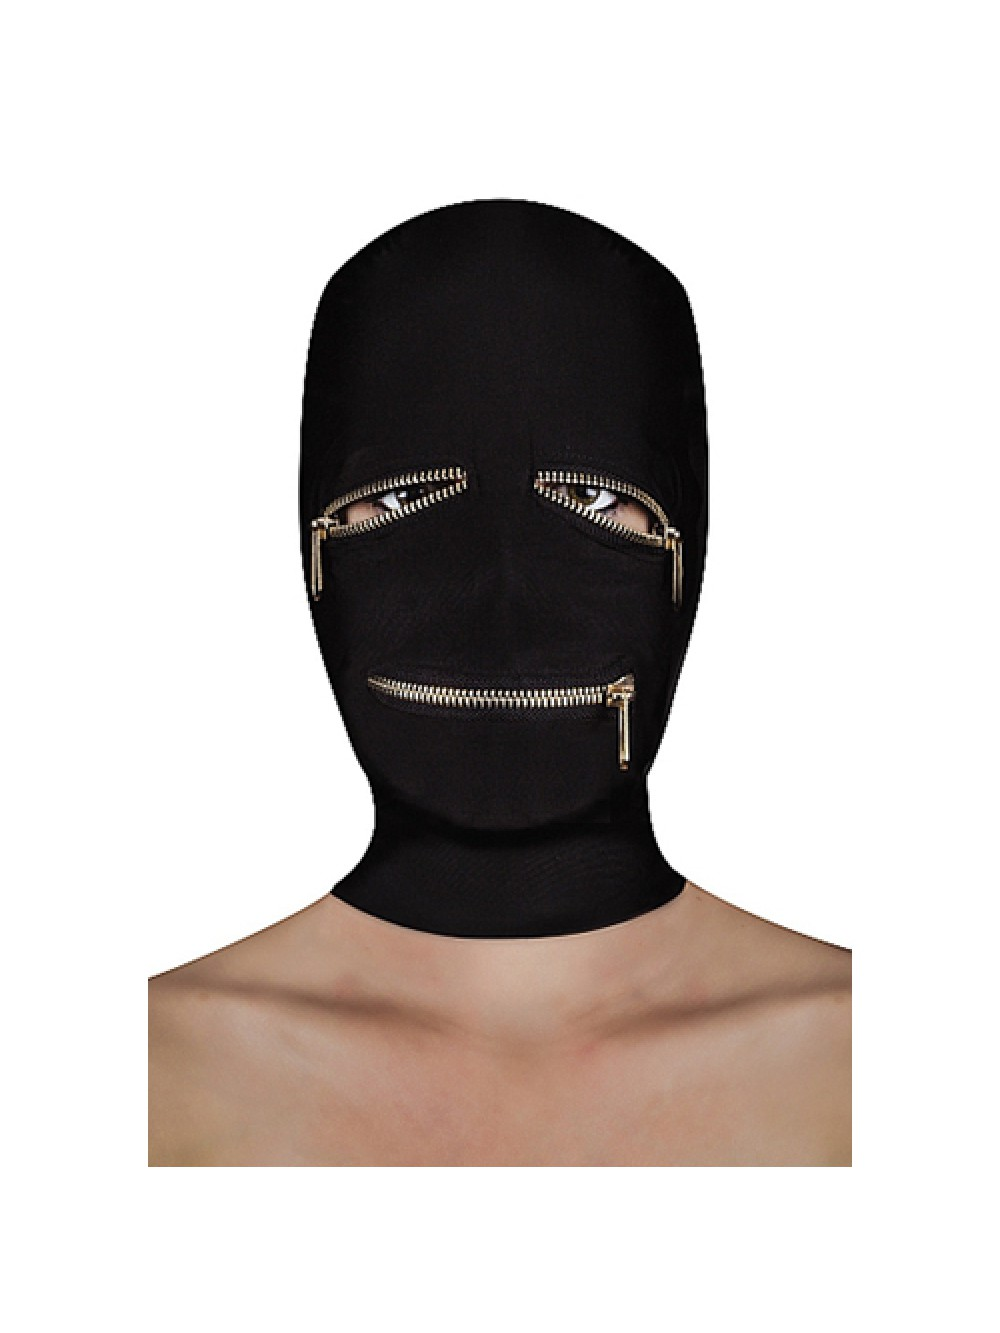 Extreme Zipper Mask with Eye and Mouth Zipper